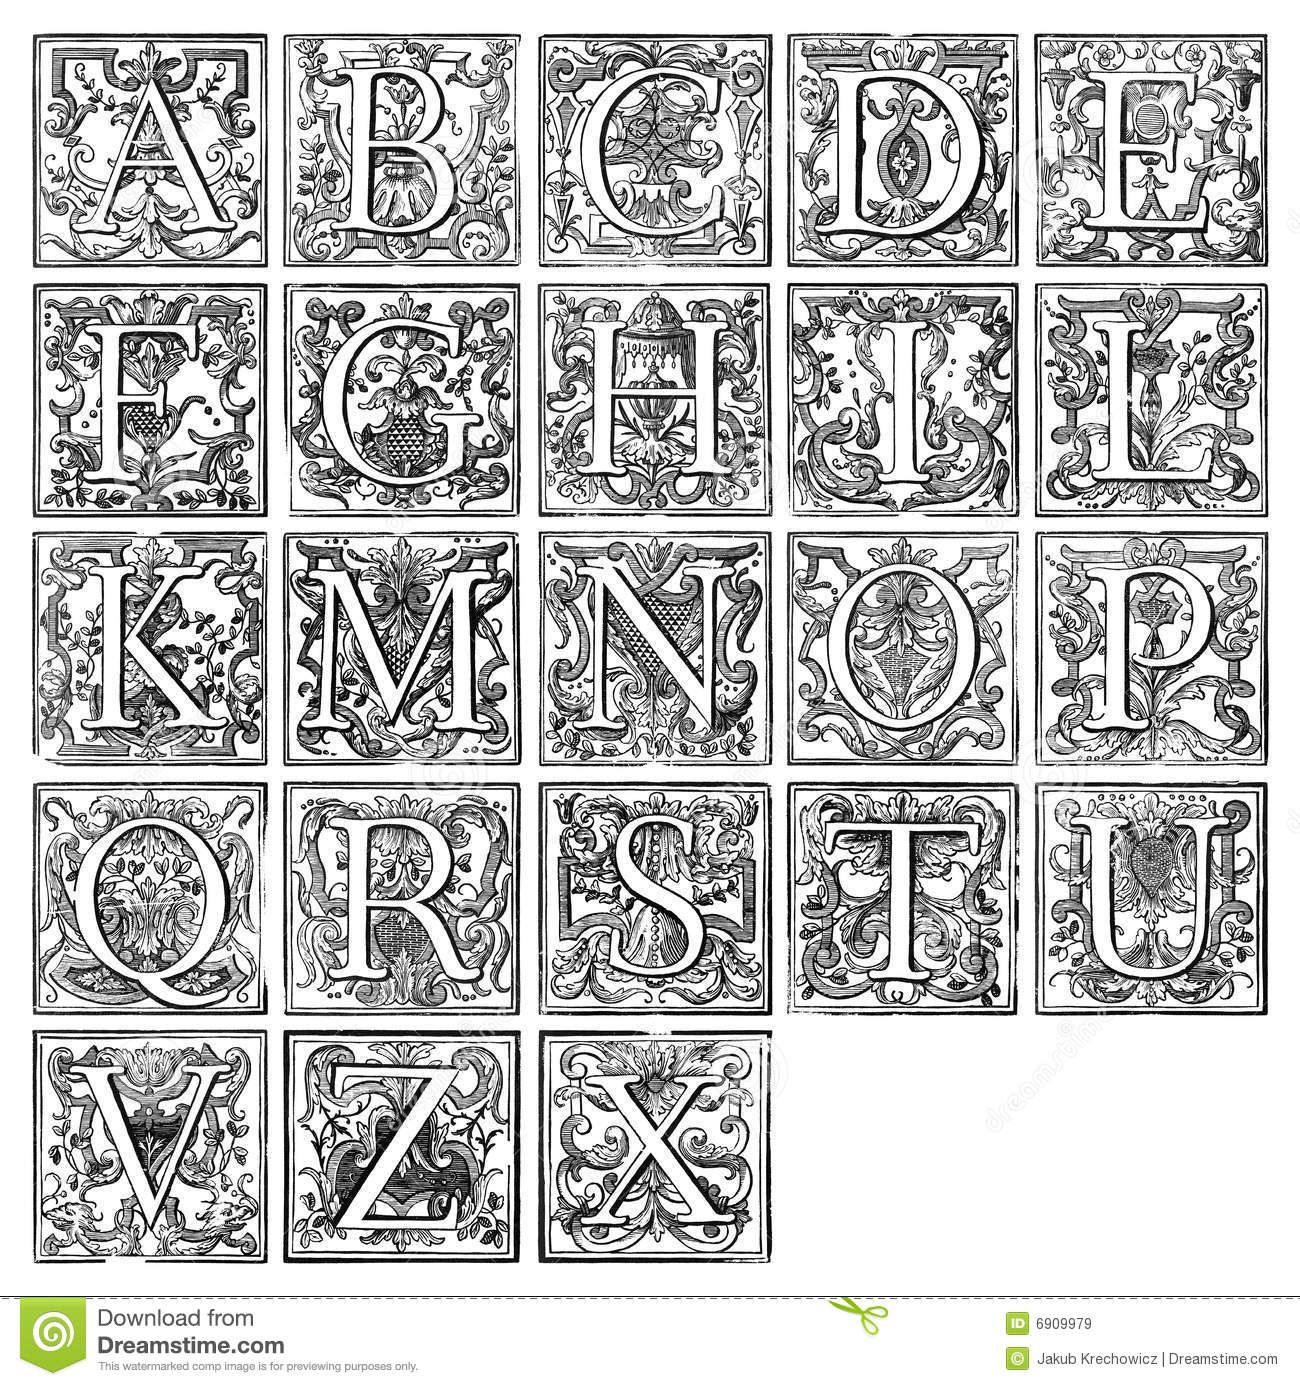 16th century images Google Search